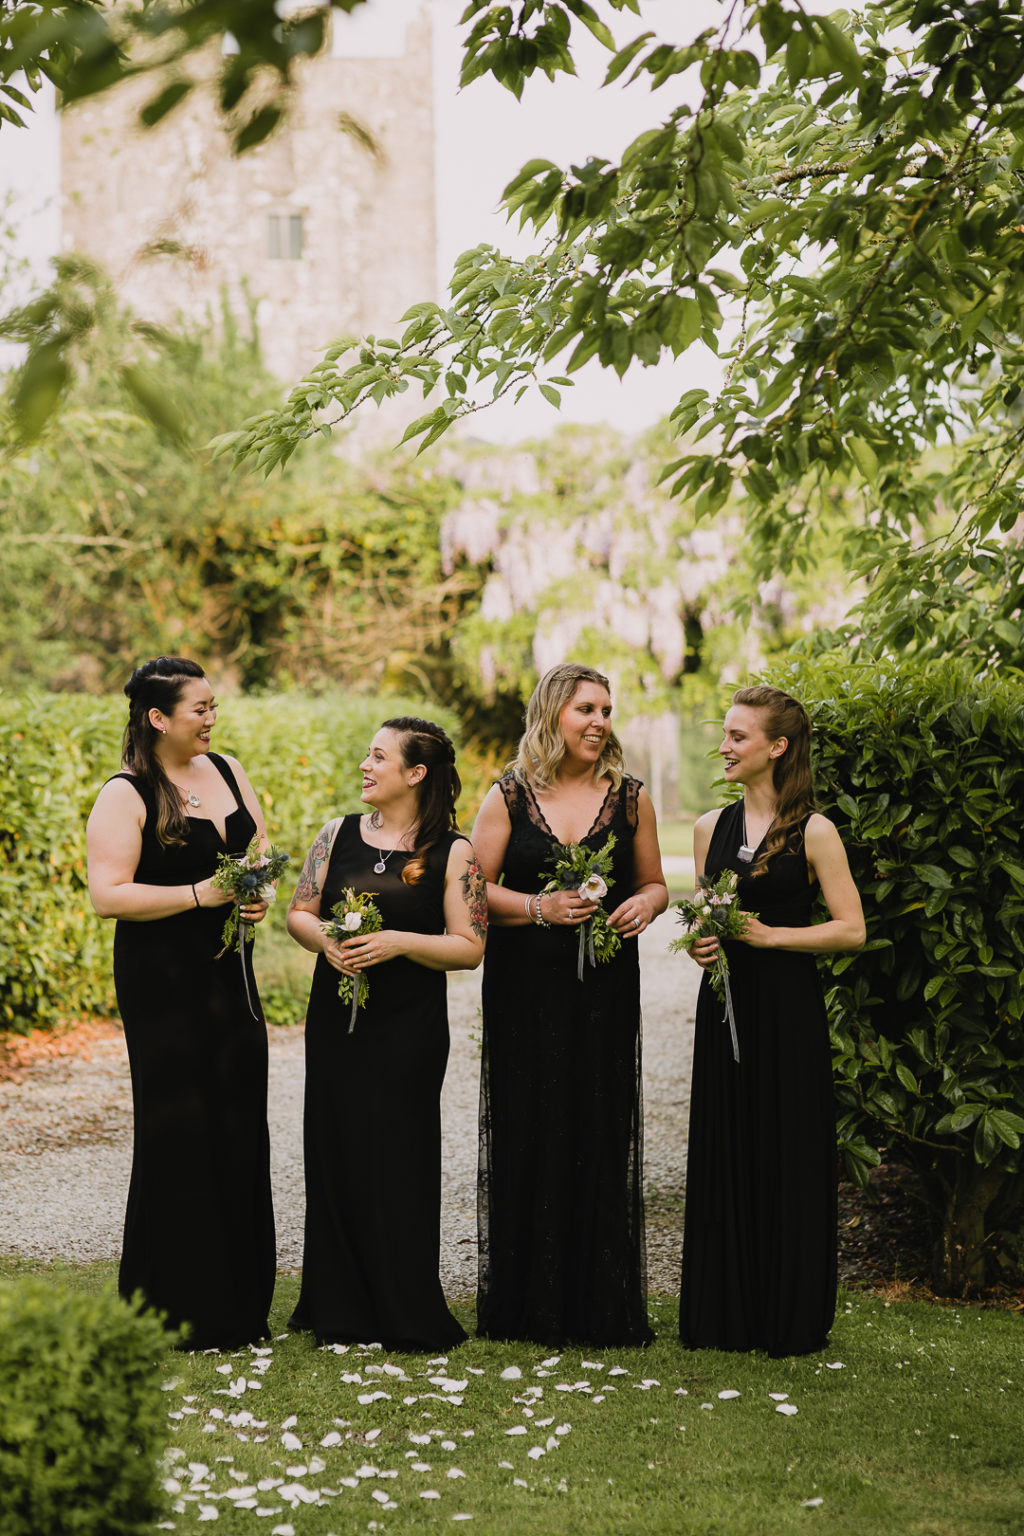 The bridesmaids were wearing mismatching black maxi dresses to match the gorgeous wedding gown